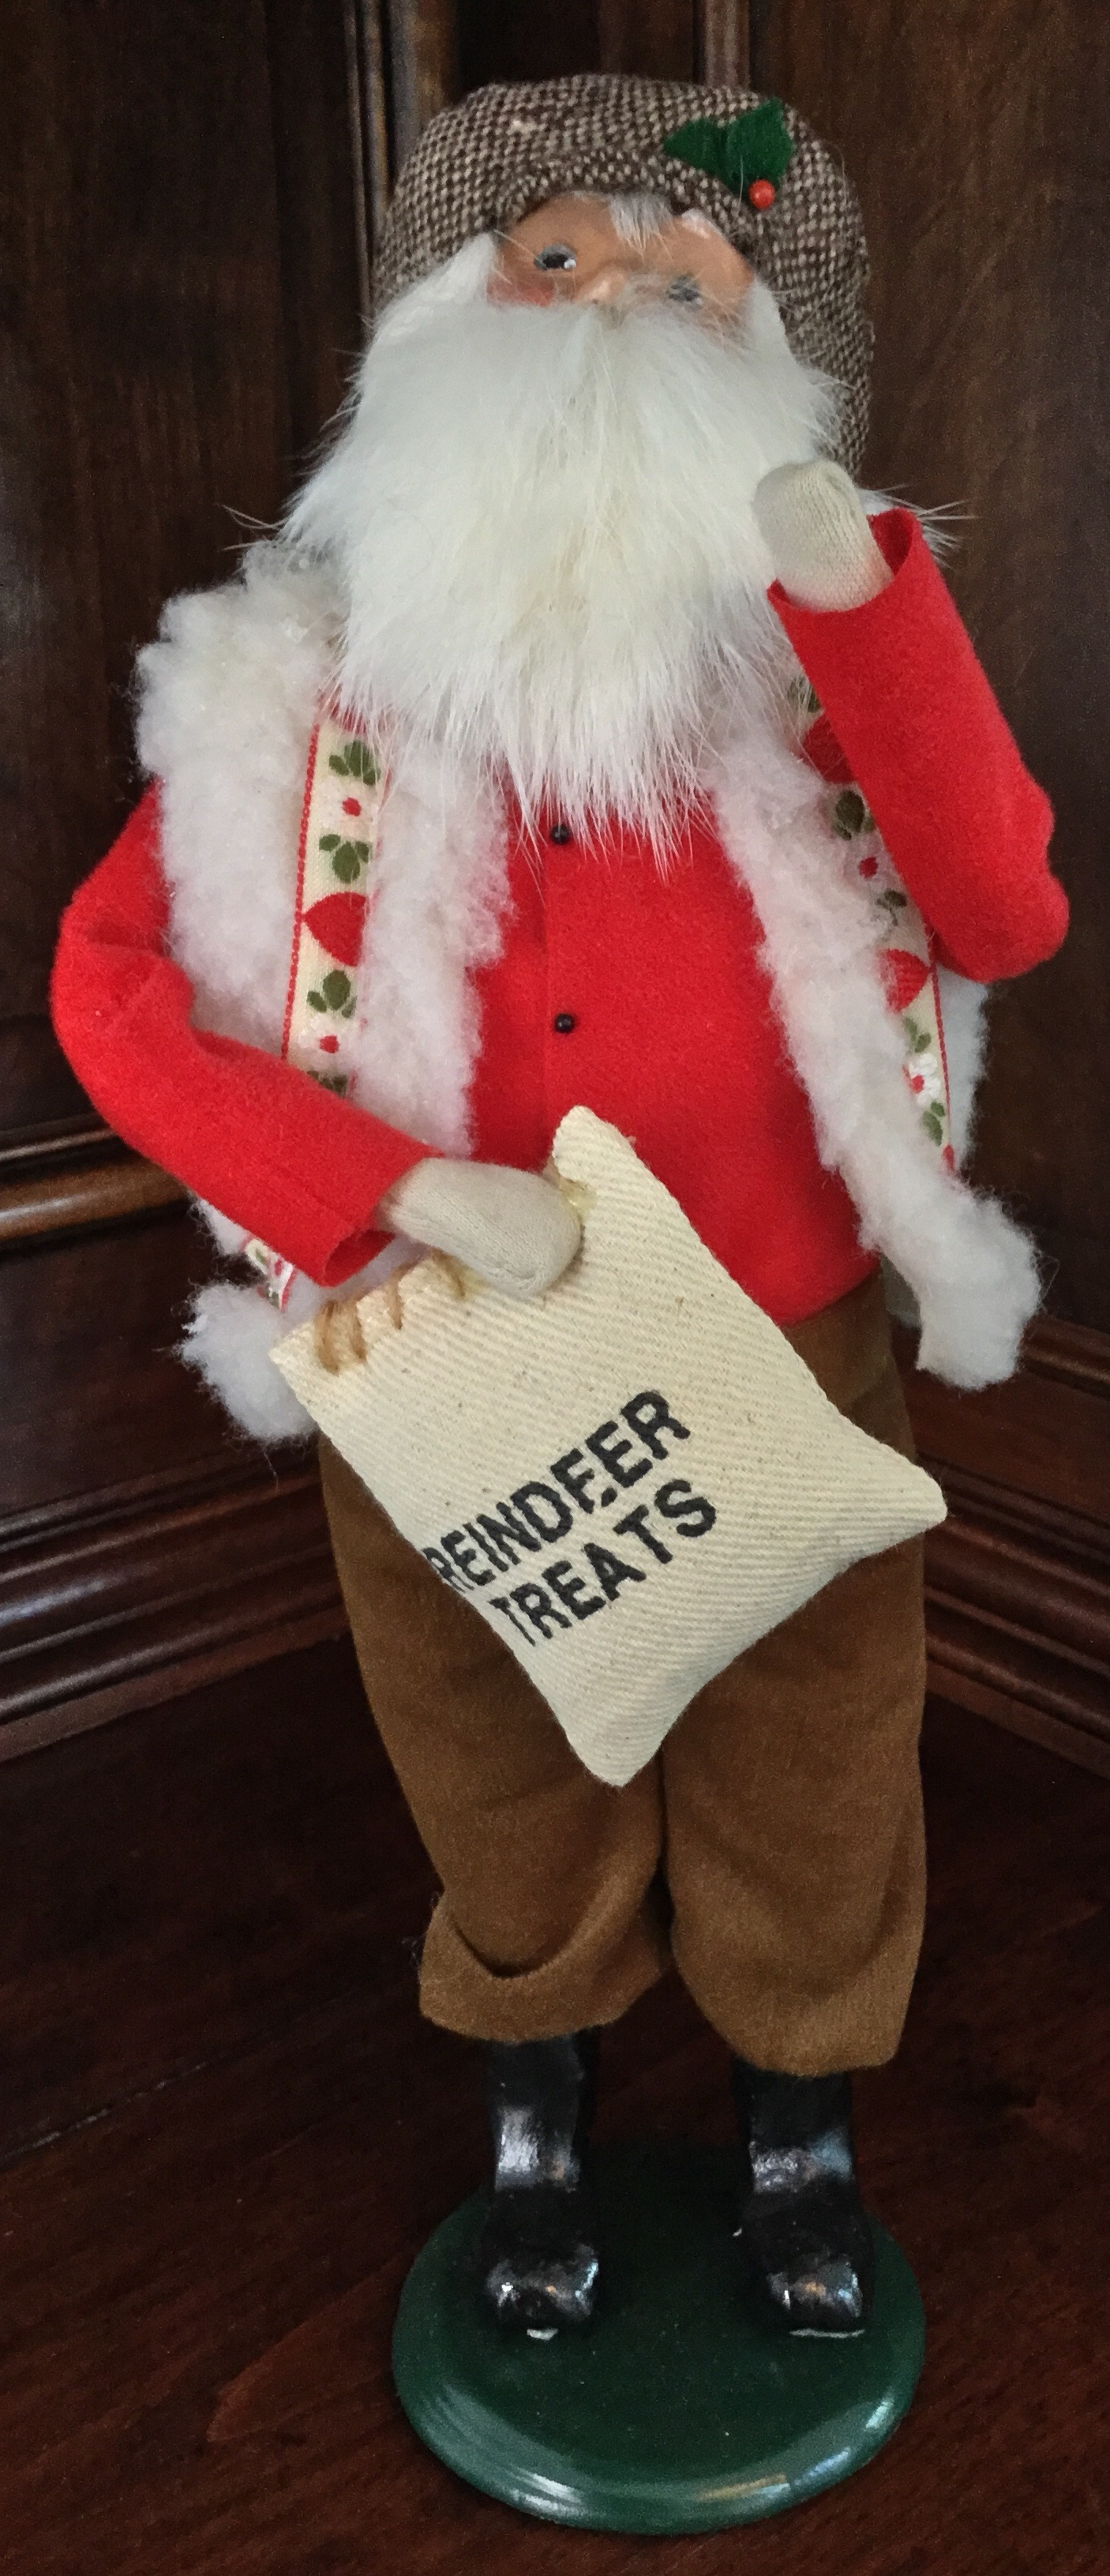 1997 Byers' Choice, Santa with Reindeer Treats